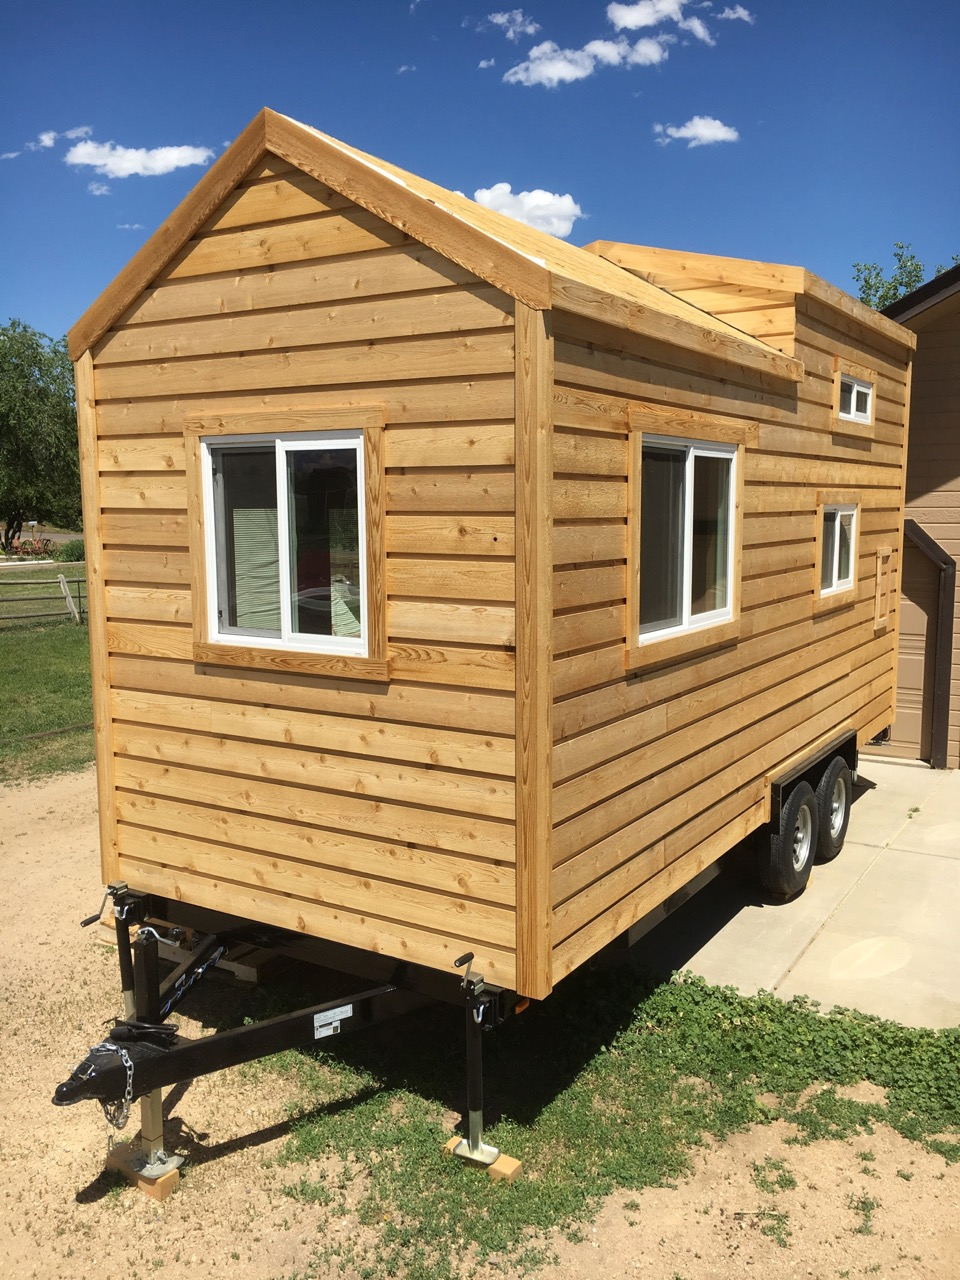 Wheelhouse-tiny-homes-17.jpg